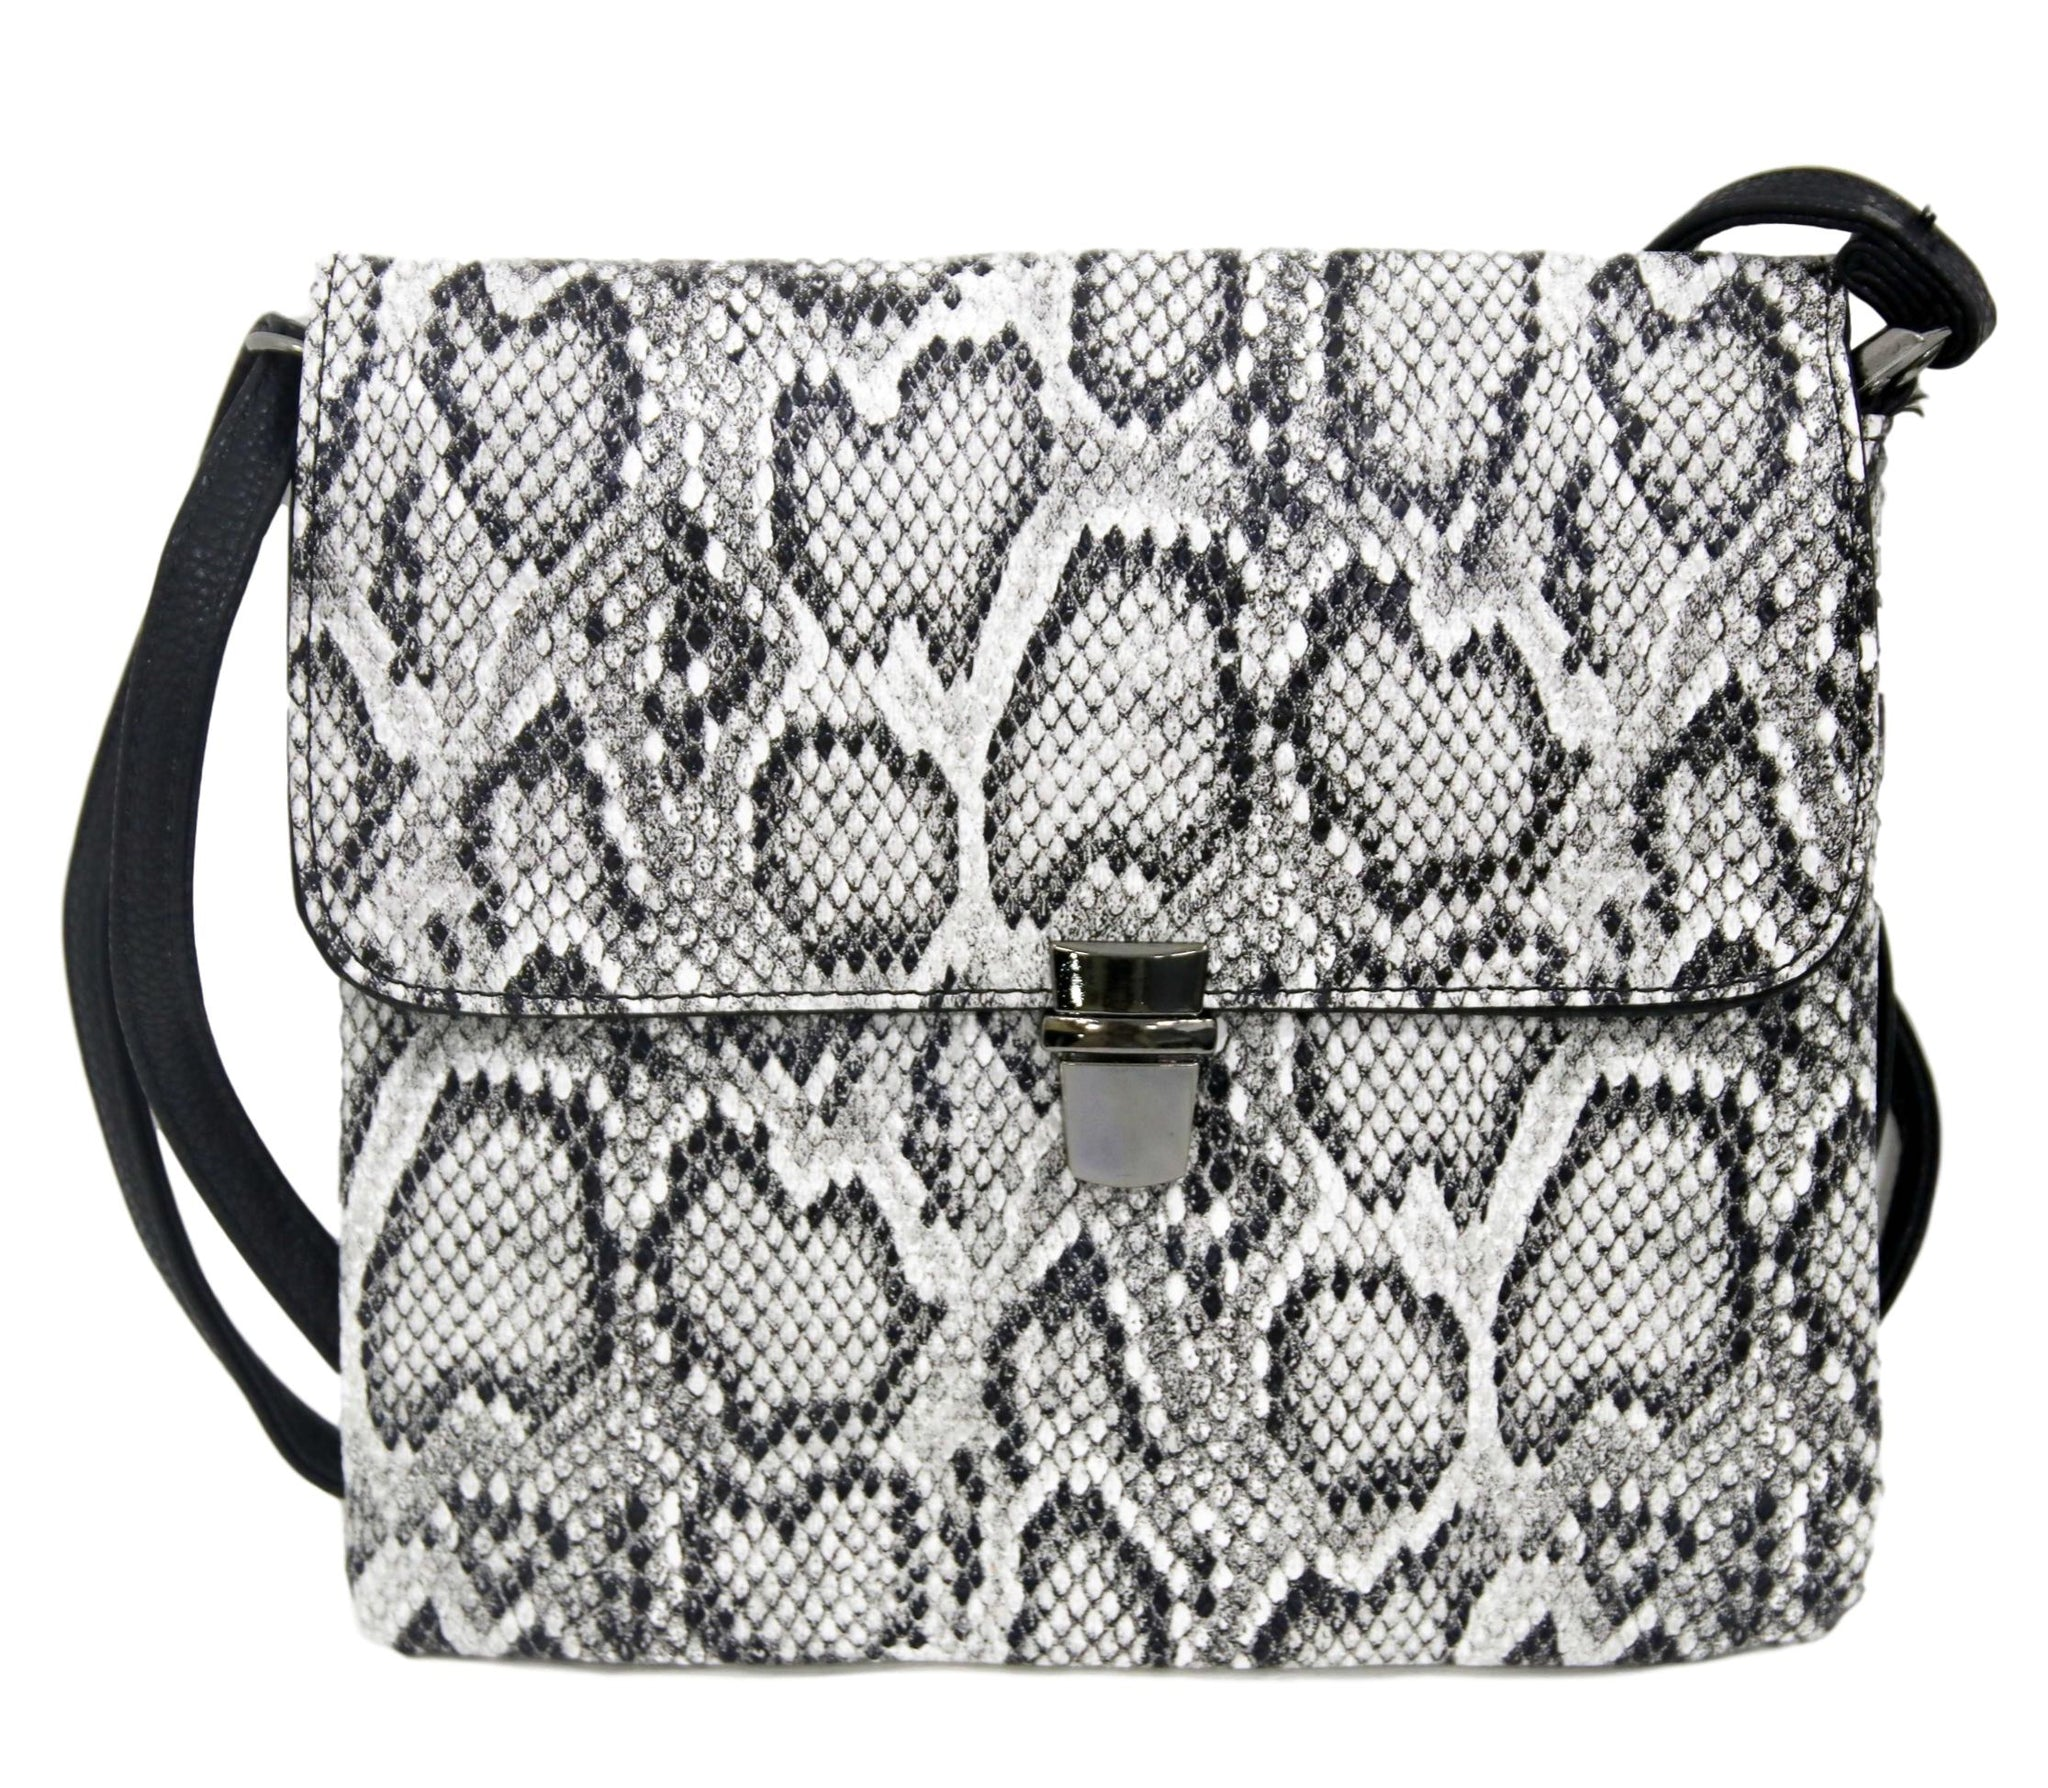 Black and White Checkerboard Side Bag